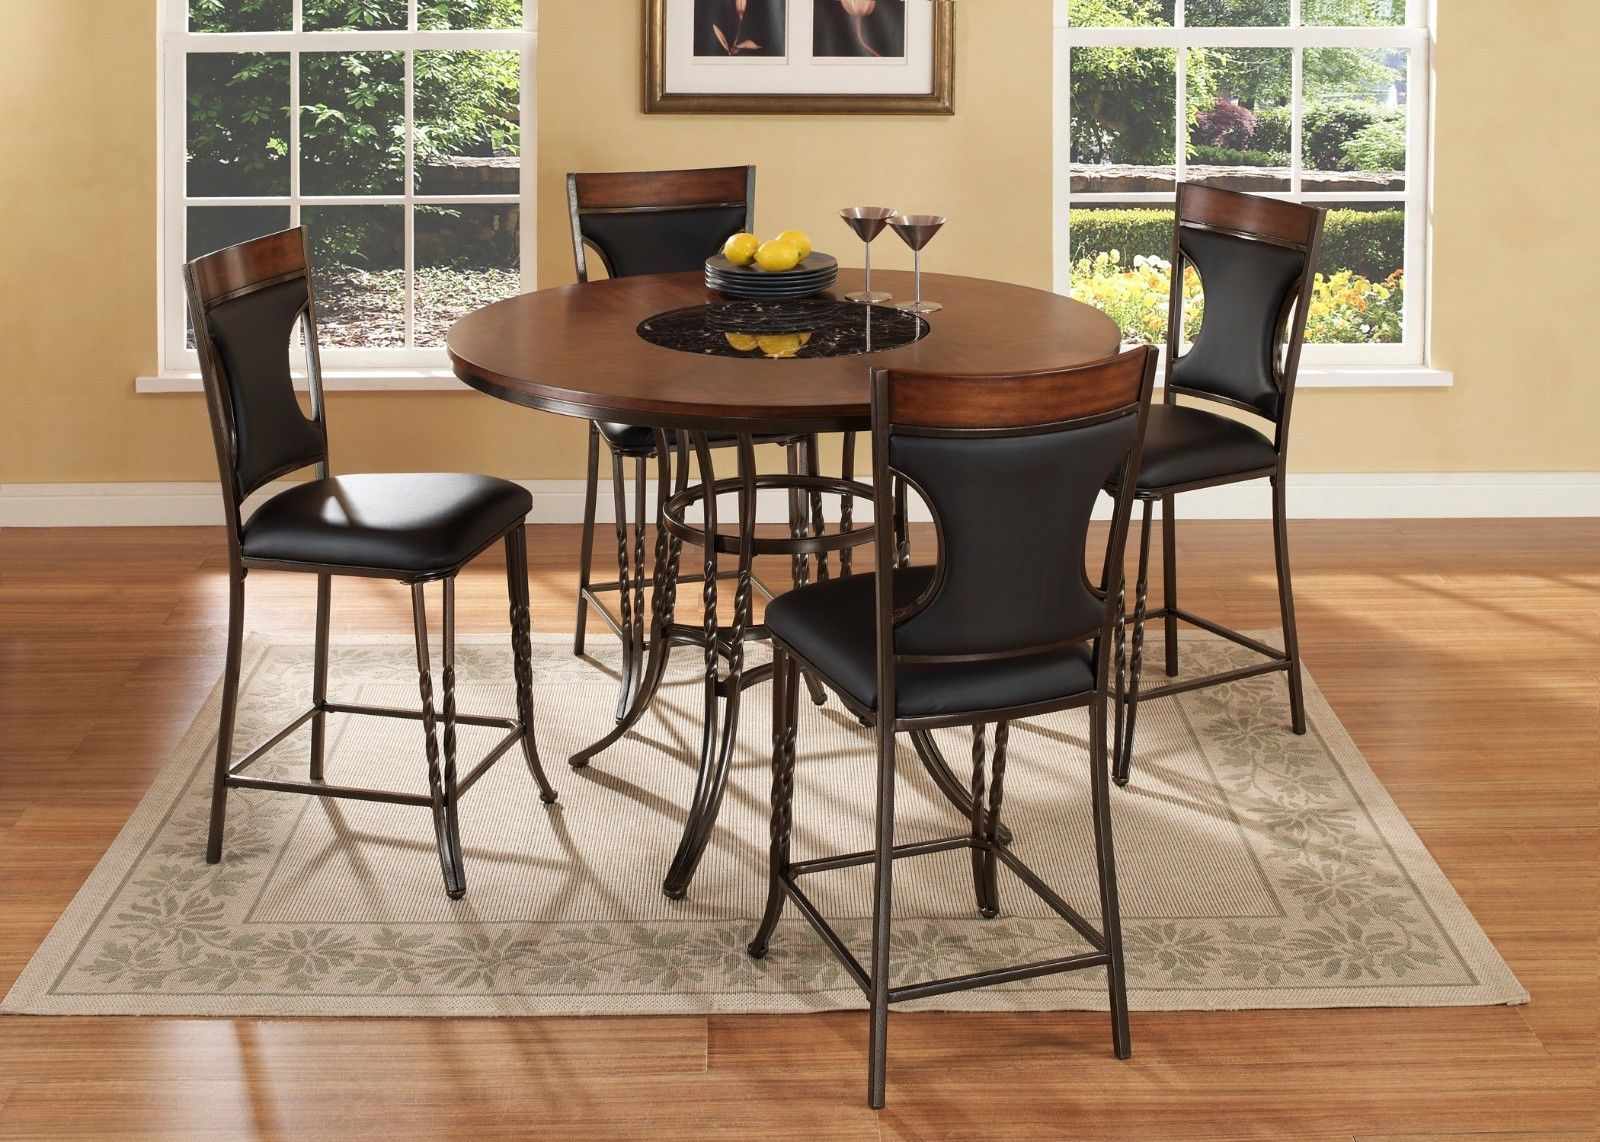 Mcferran DYNASTY Dining Room Set 5pc. Chic Modern Style